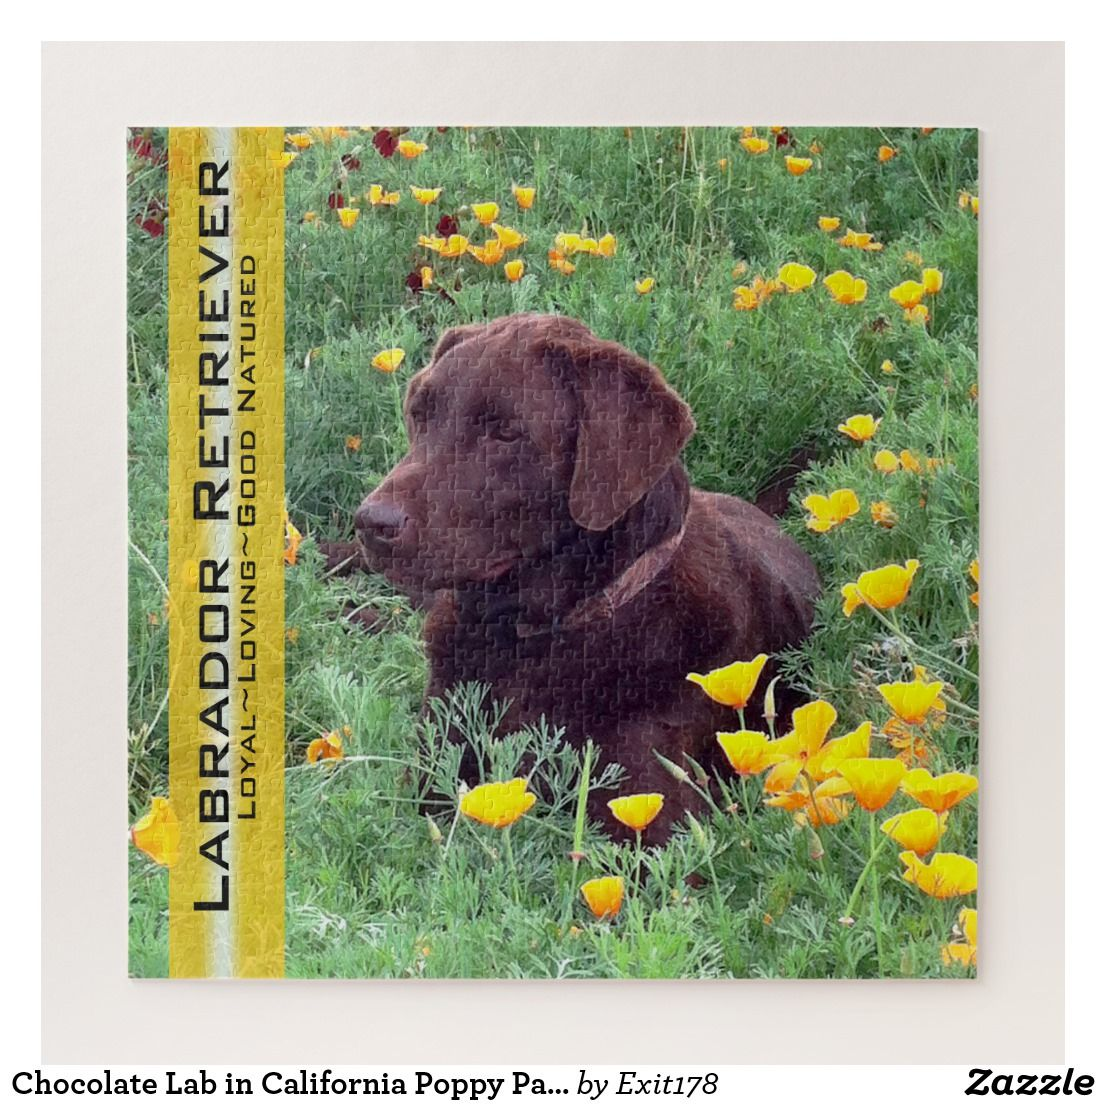 Chocolate Lab in California Poppy Patch puzzles